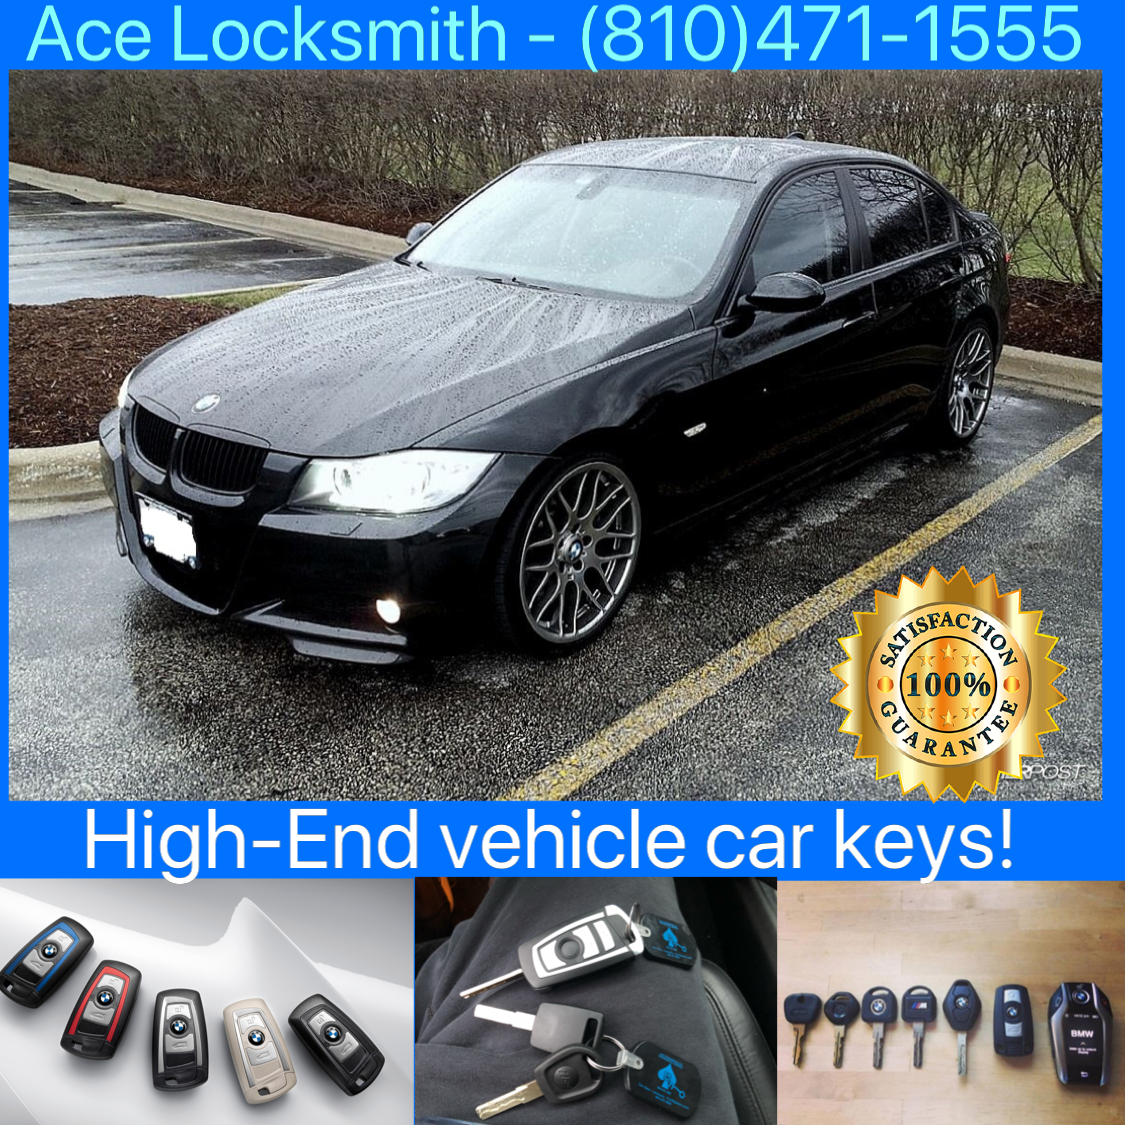 Ace Locksmith